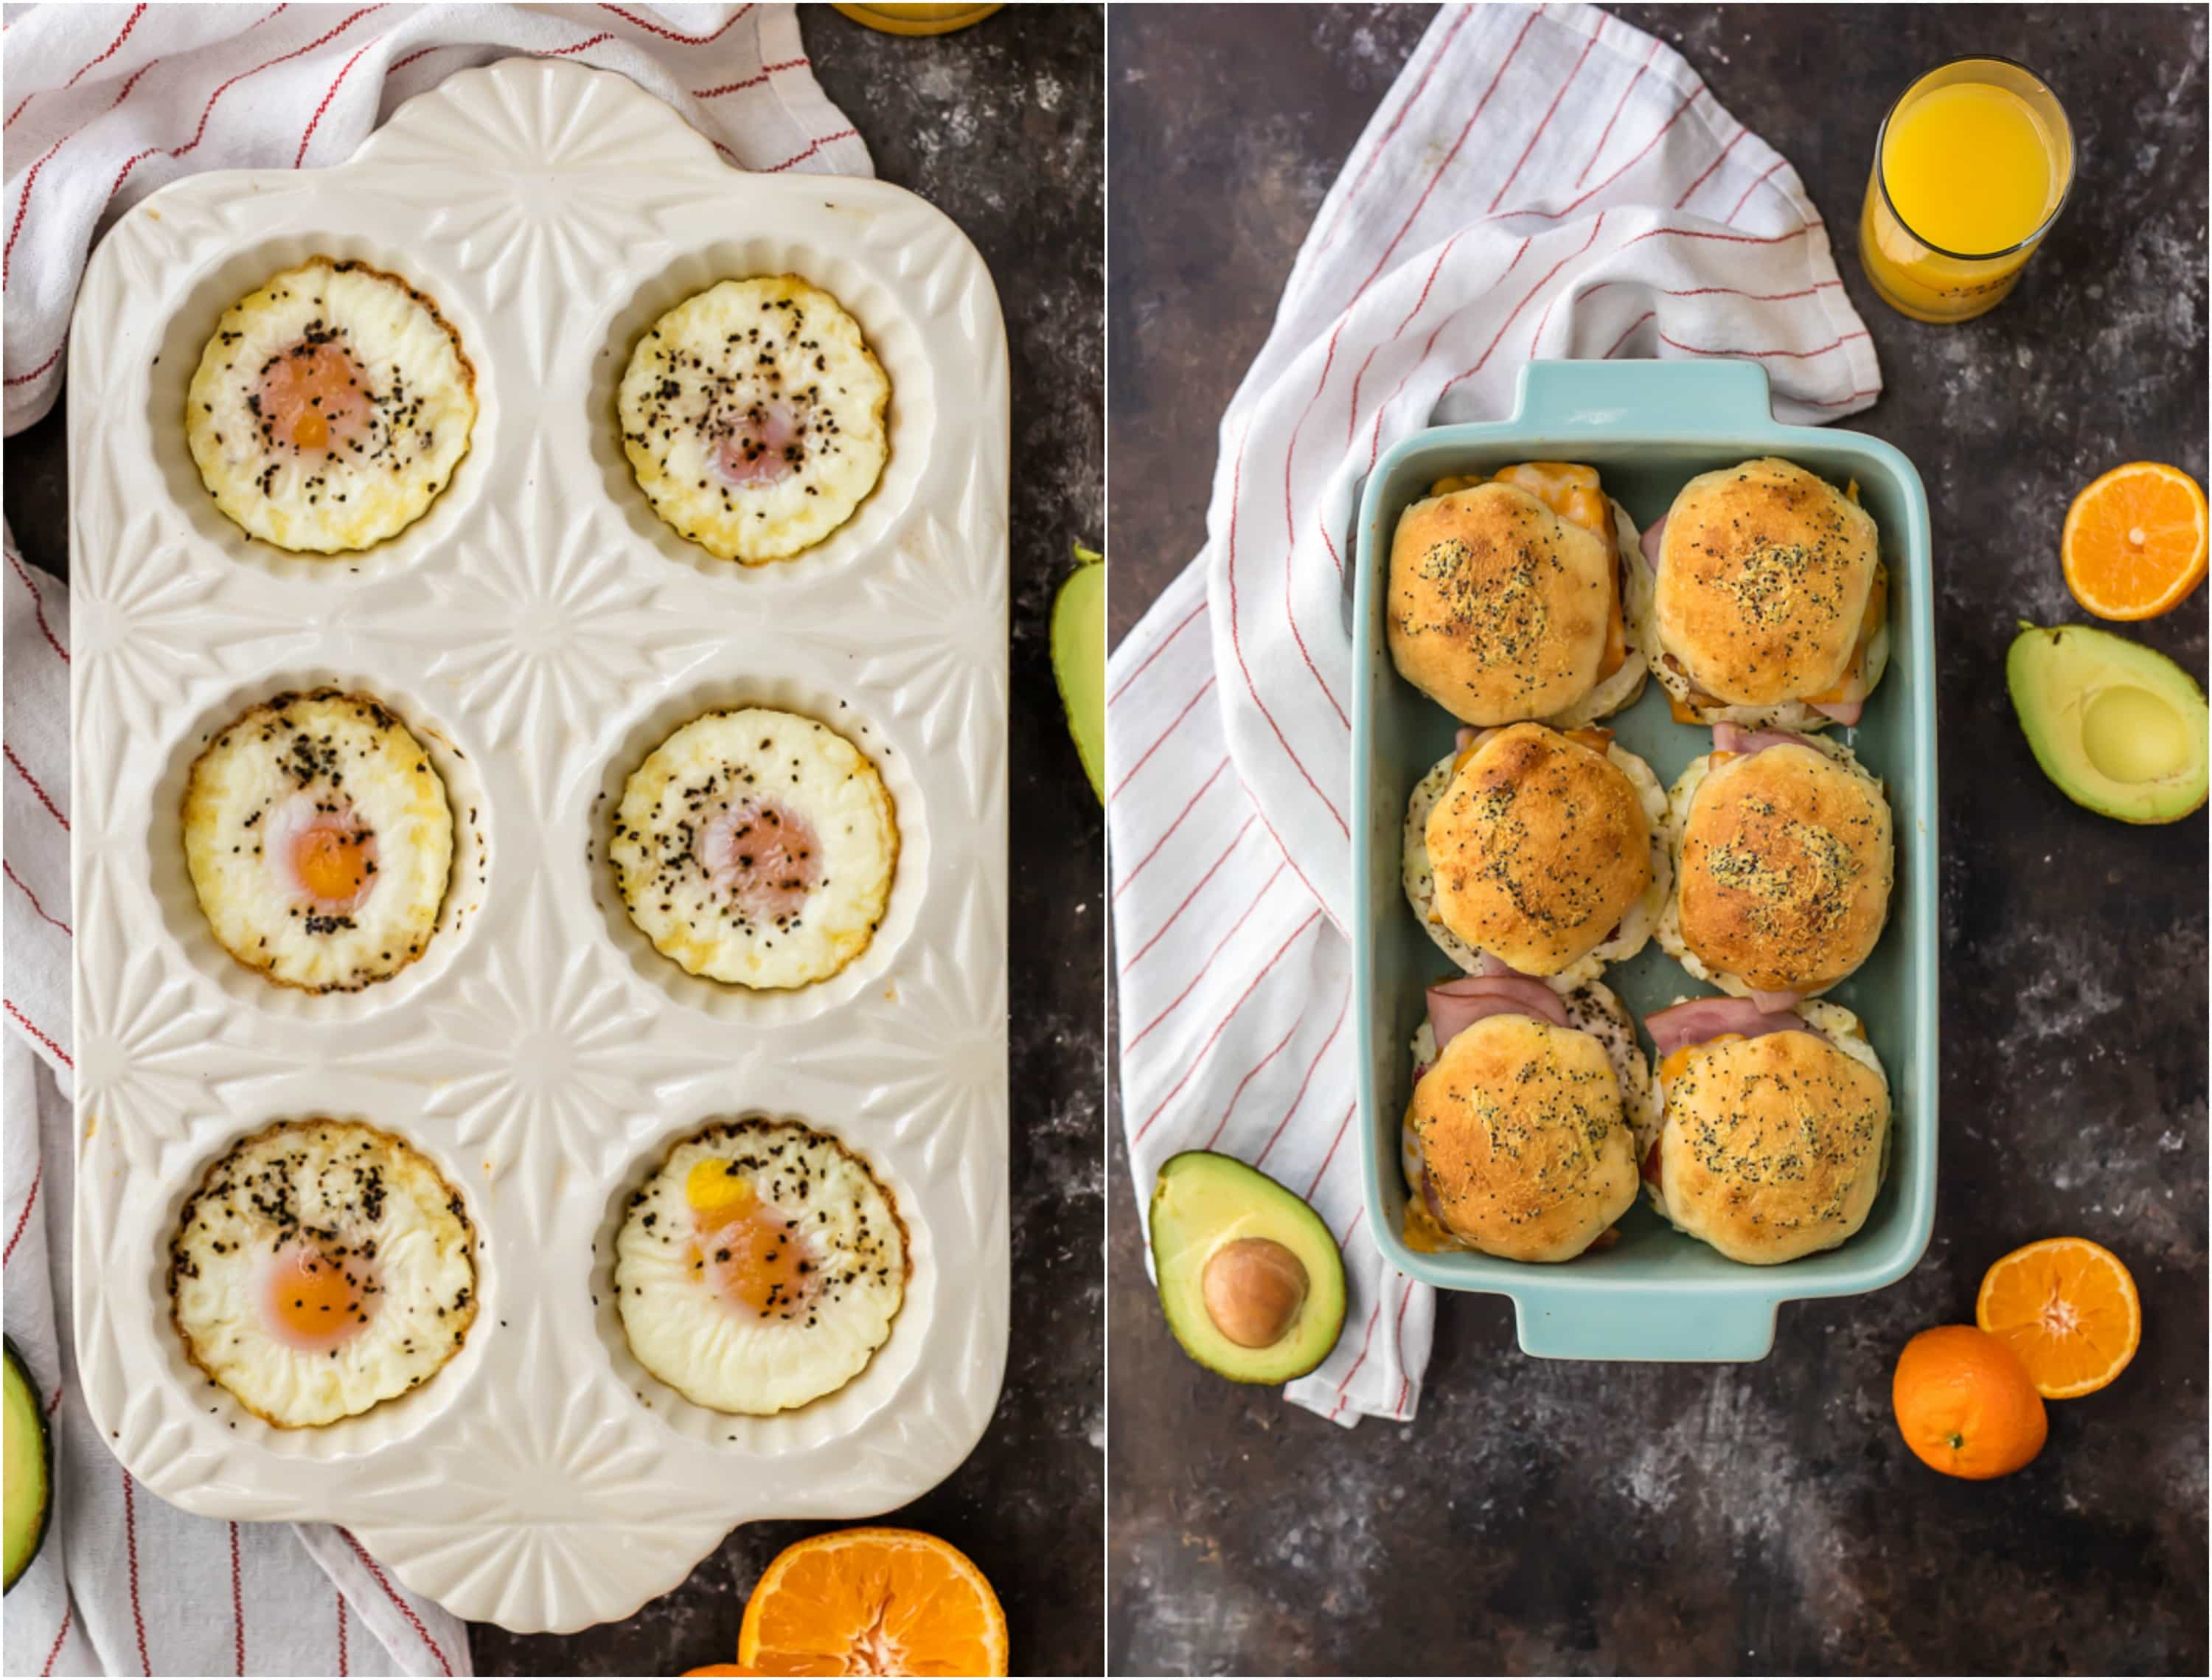 baked eggs and baked ultimate baked breakfast sliders in a pan